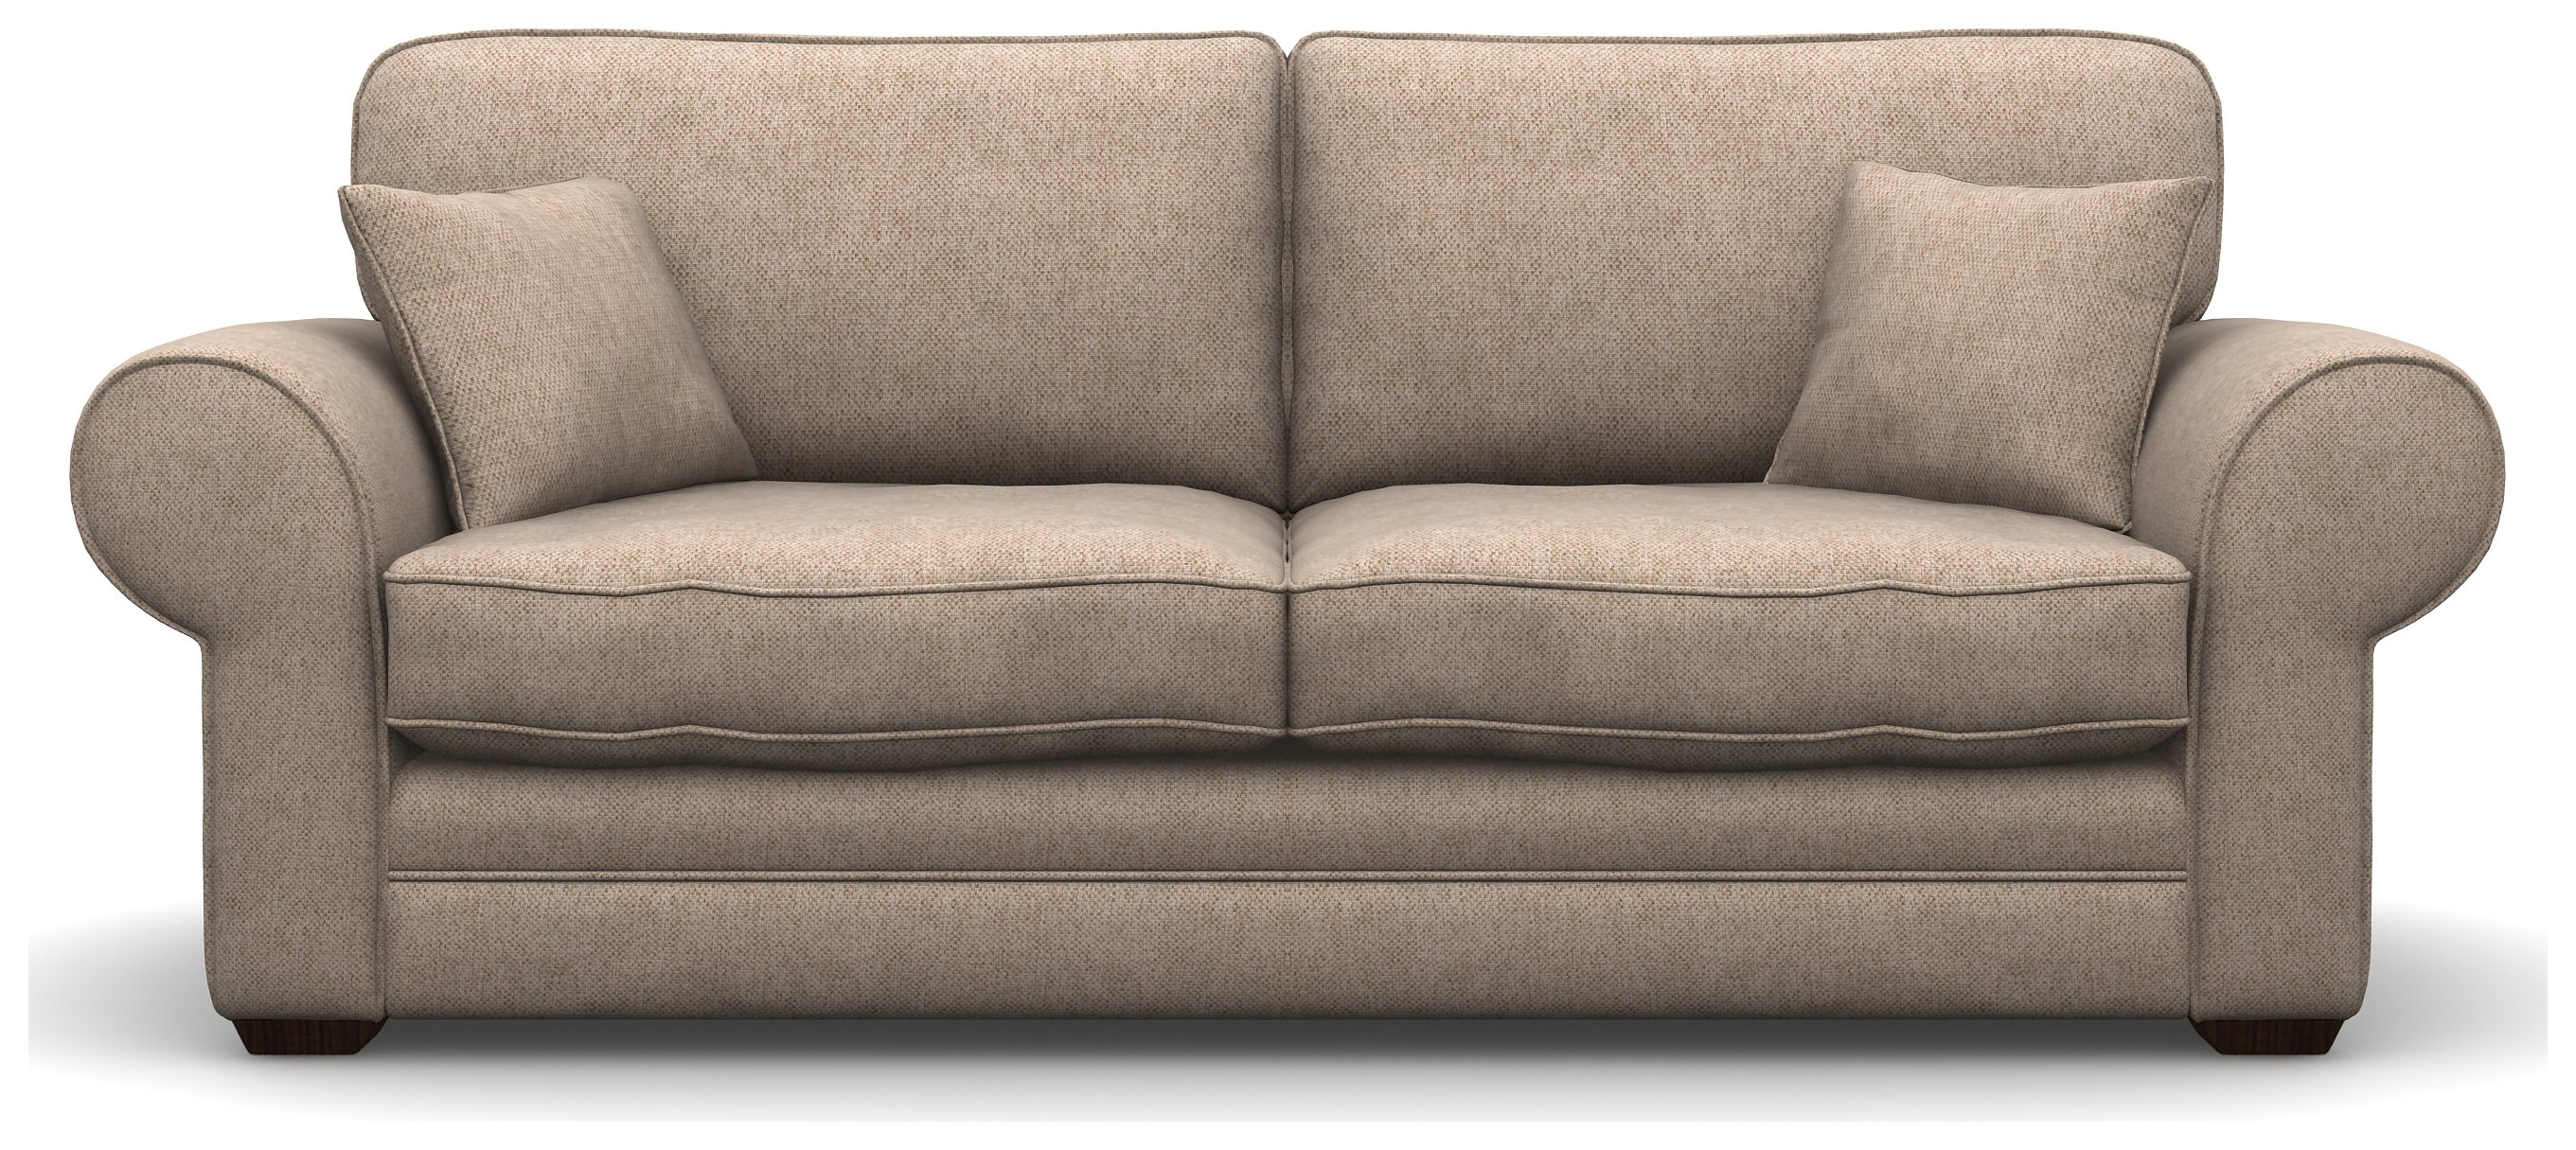 Heart of House Chedworth 3 Seater Fabric Sofa With Wooden Feet - Beige.